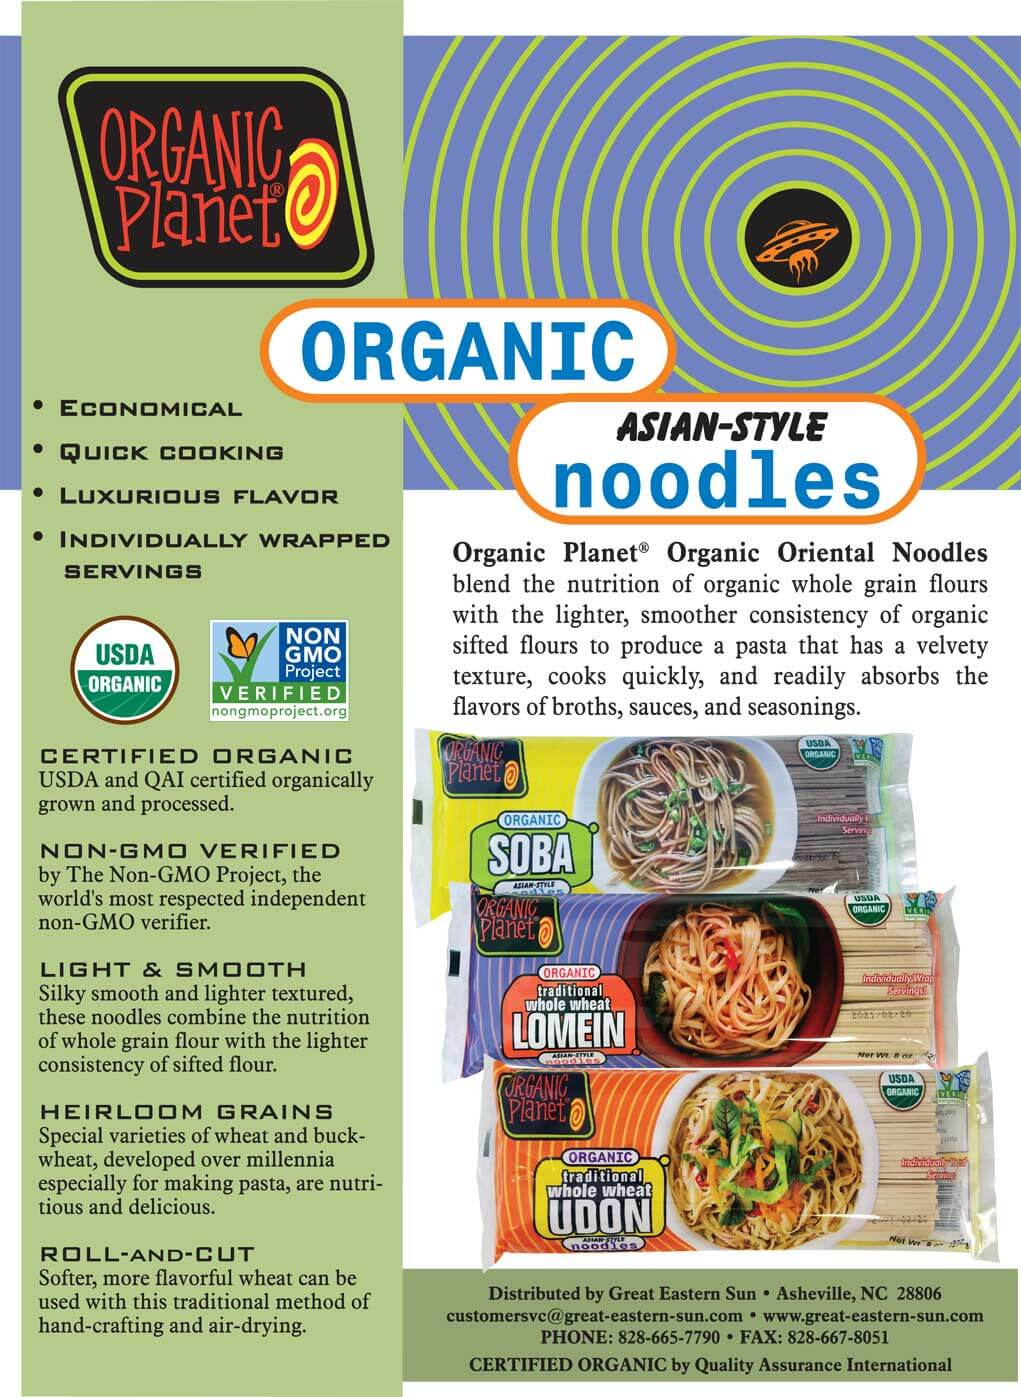 organic-planet-organic-asian-style-noodles